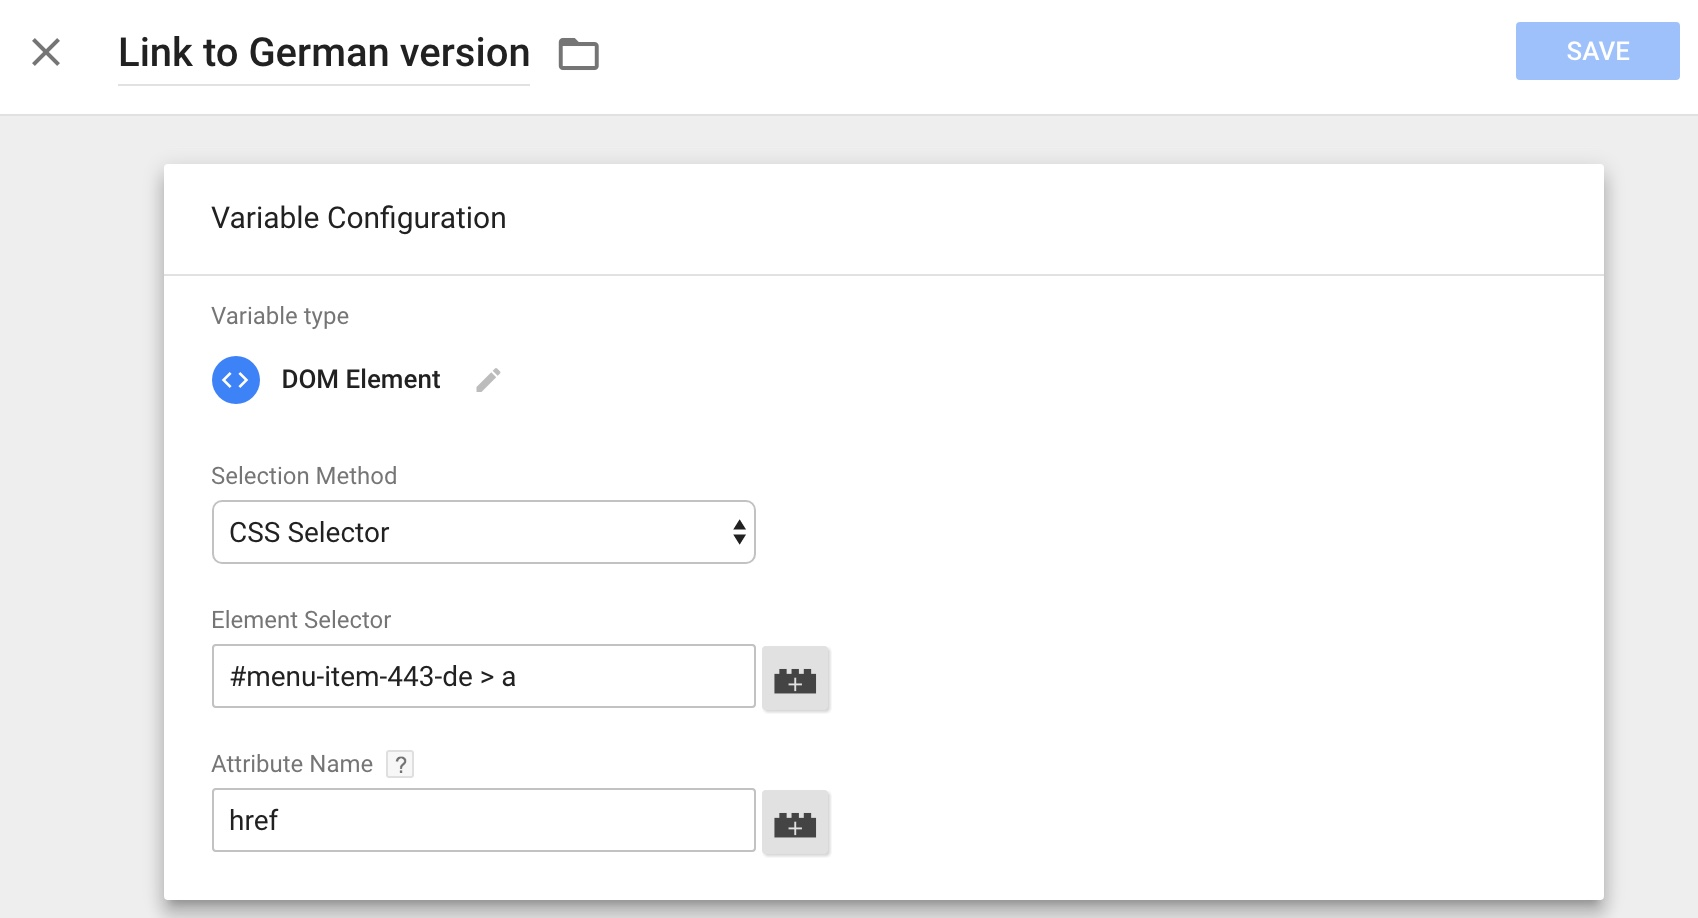 Configured variable for link to other language version